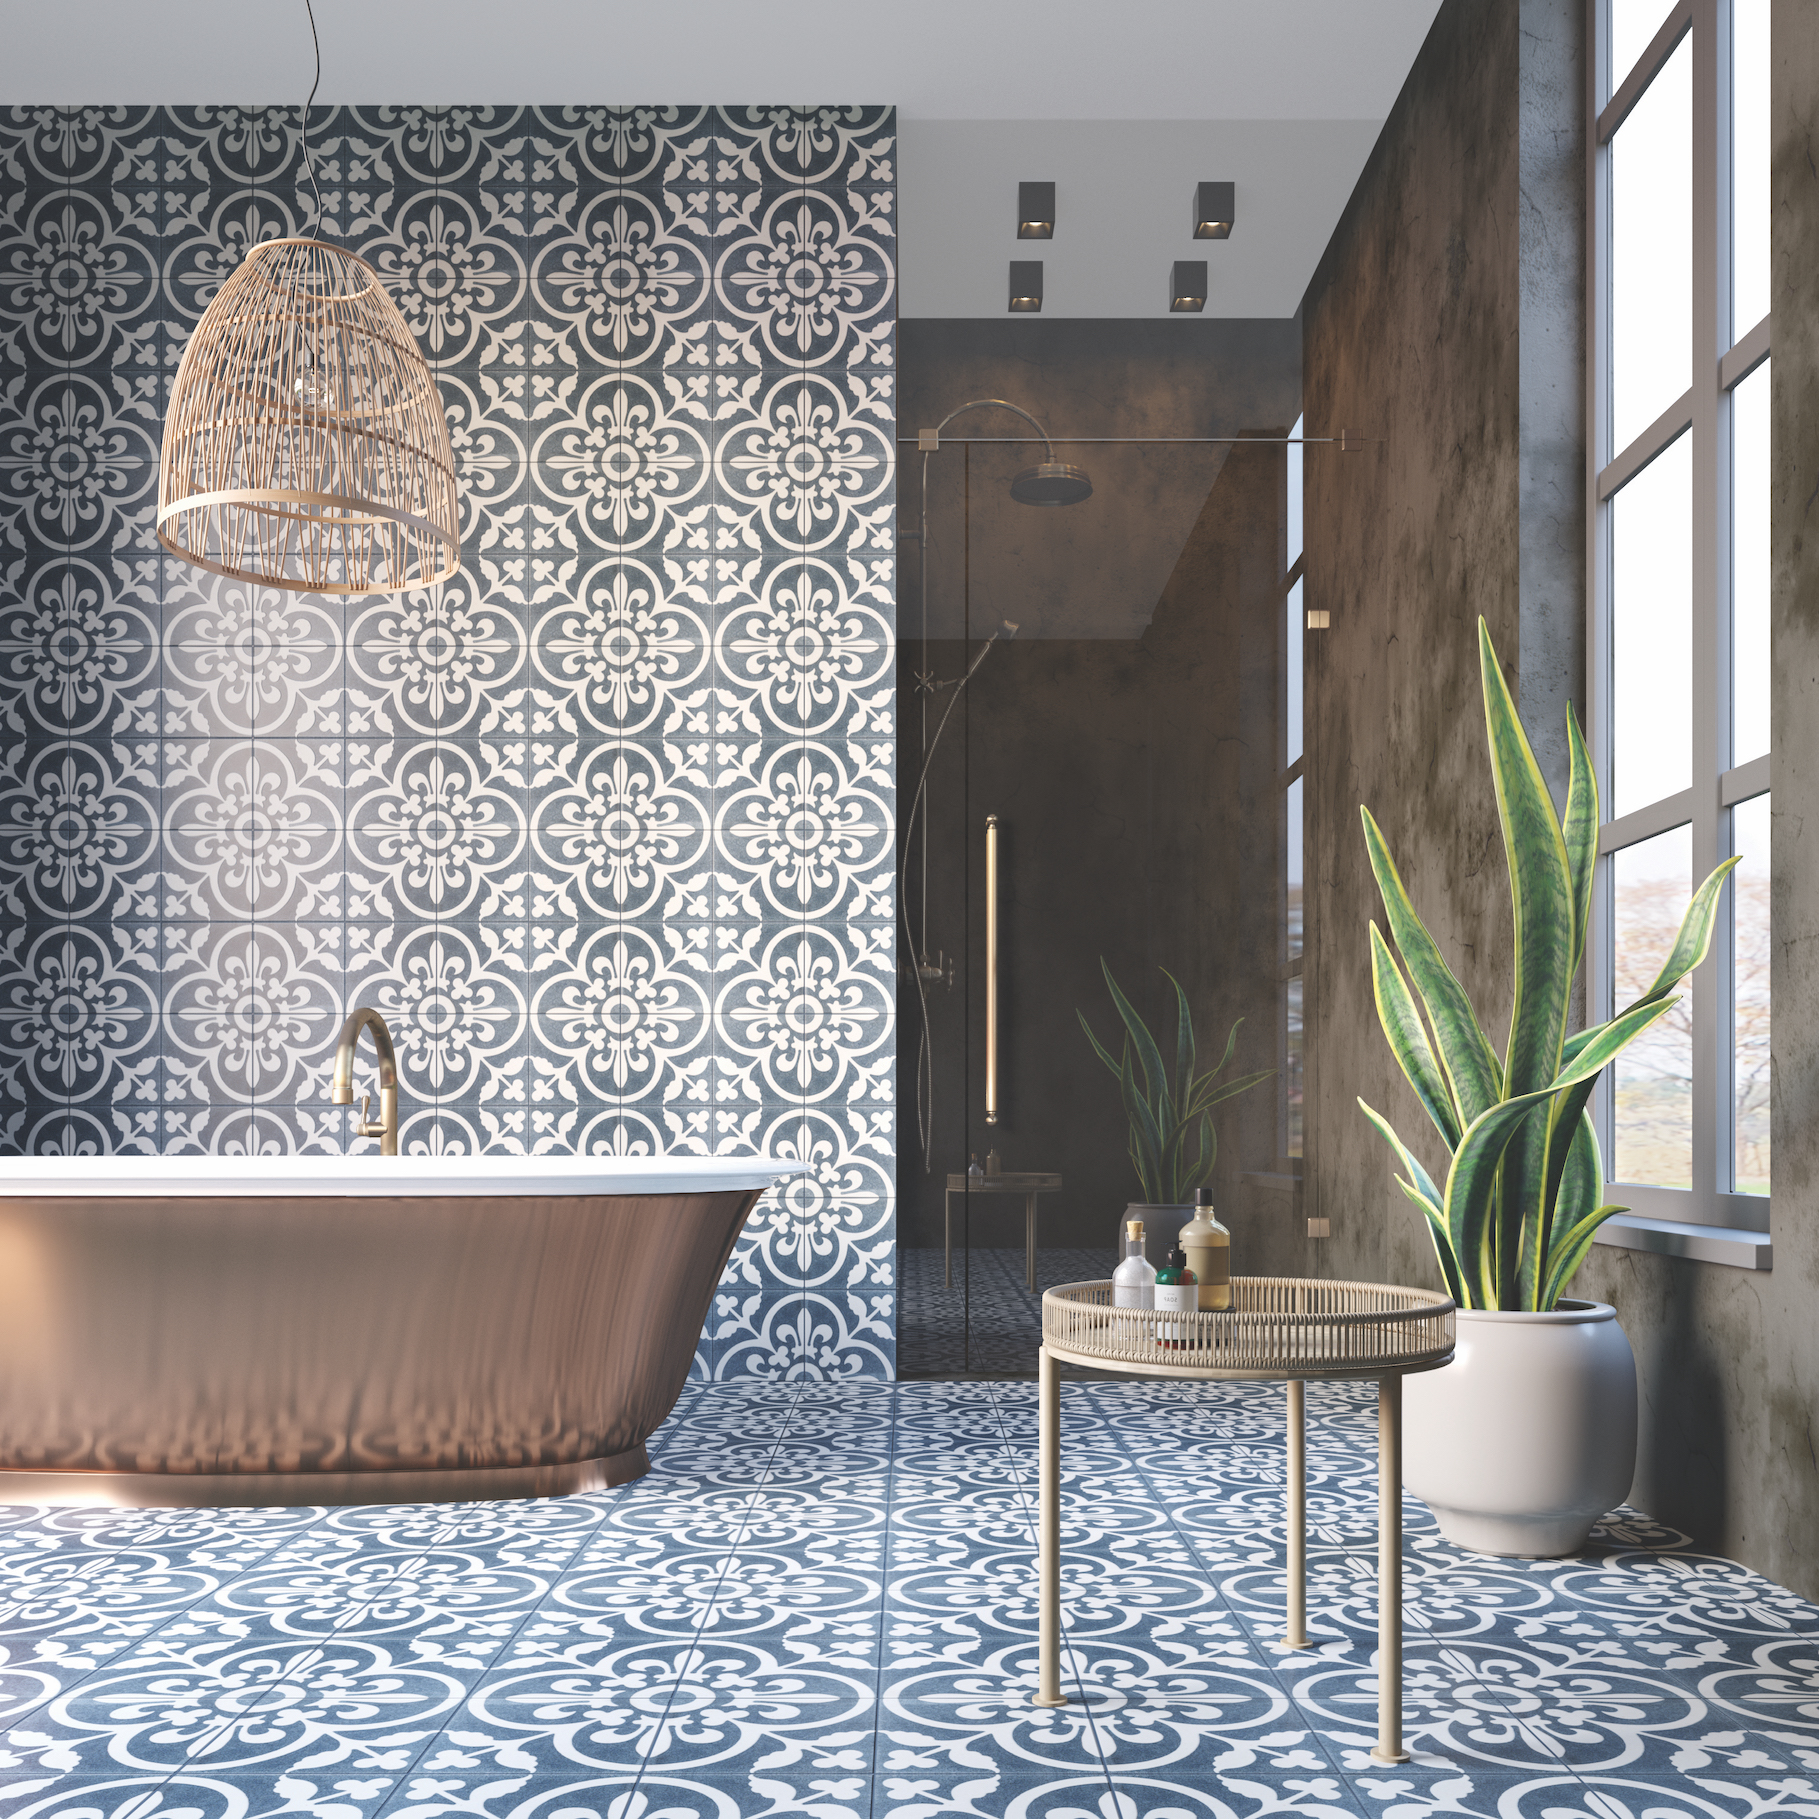 Istanblue handmade encaustic cement tile, 20 x 20 x 1.7cm, £6.72, min order of 5 meter square / 125 tiles